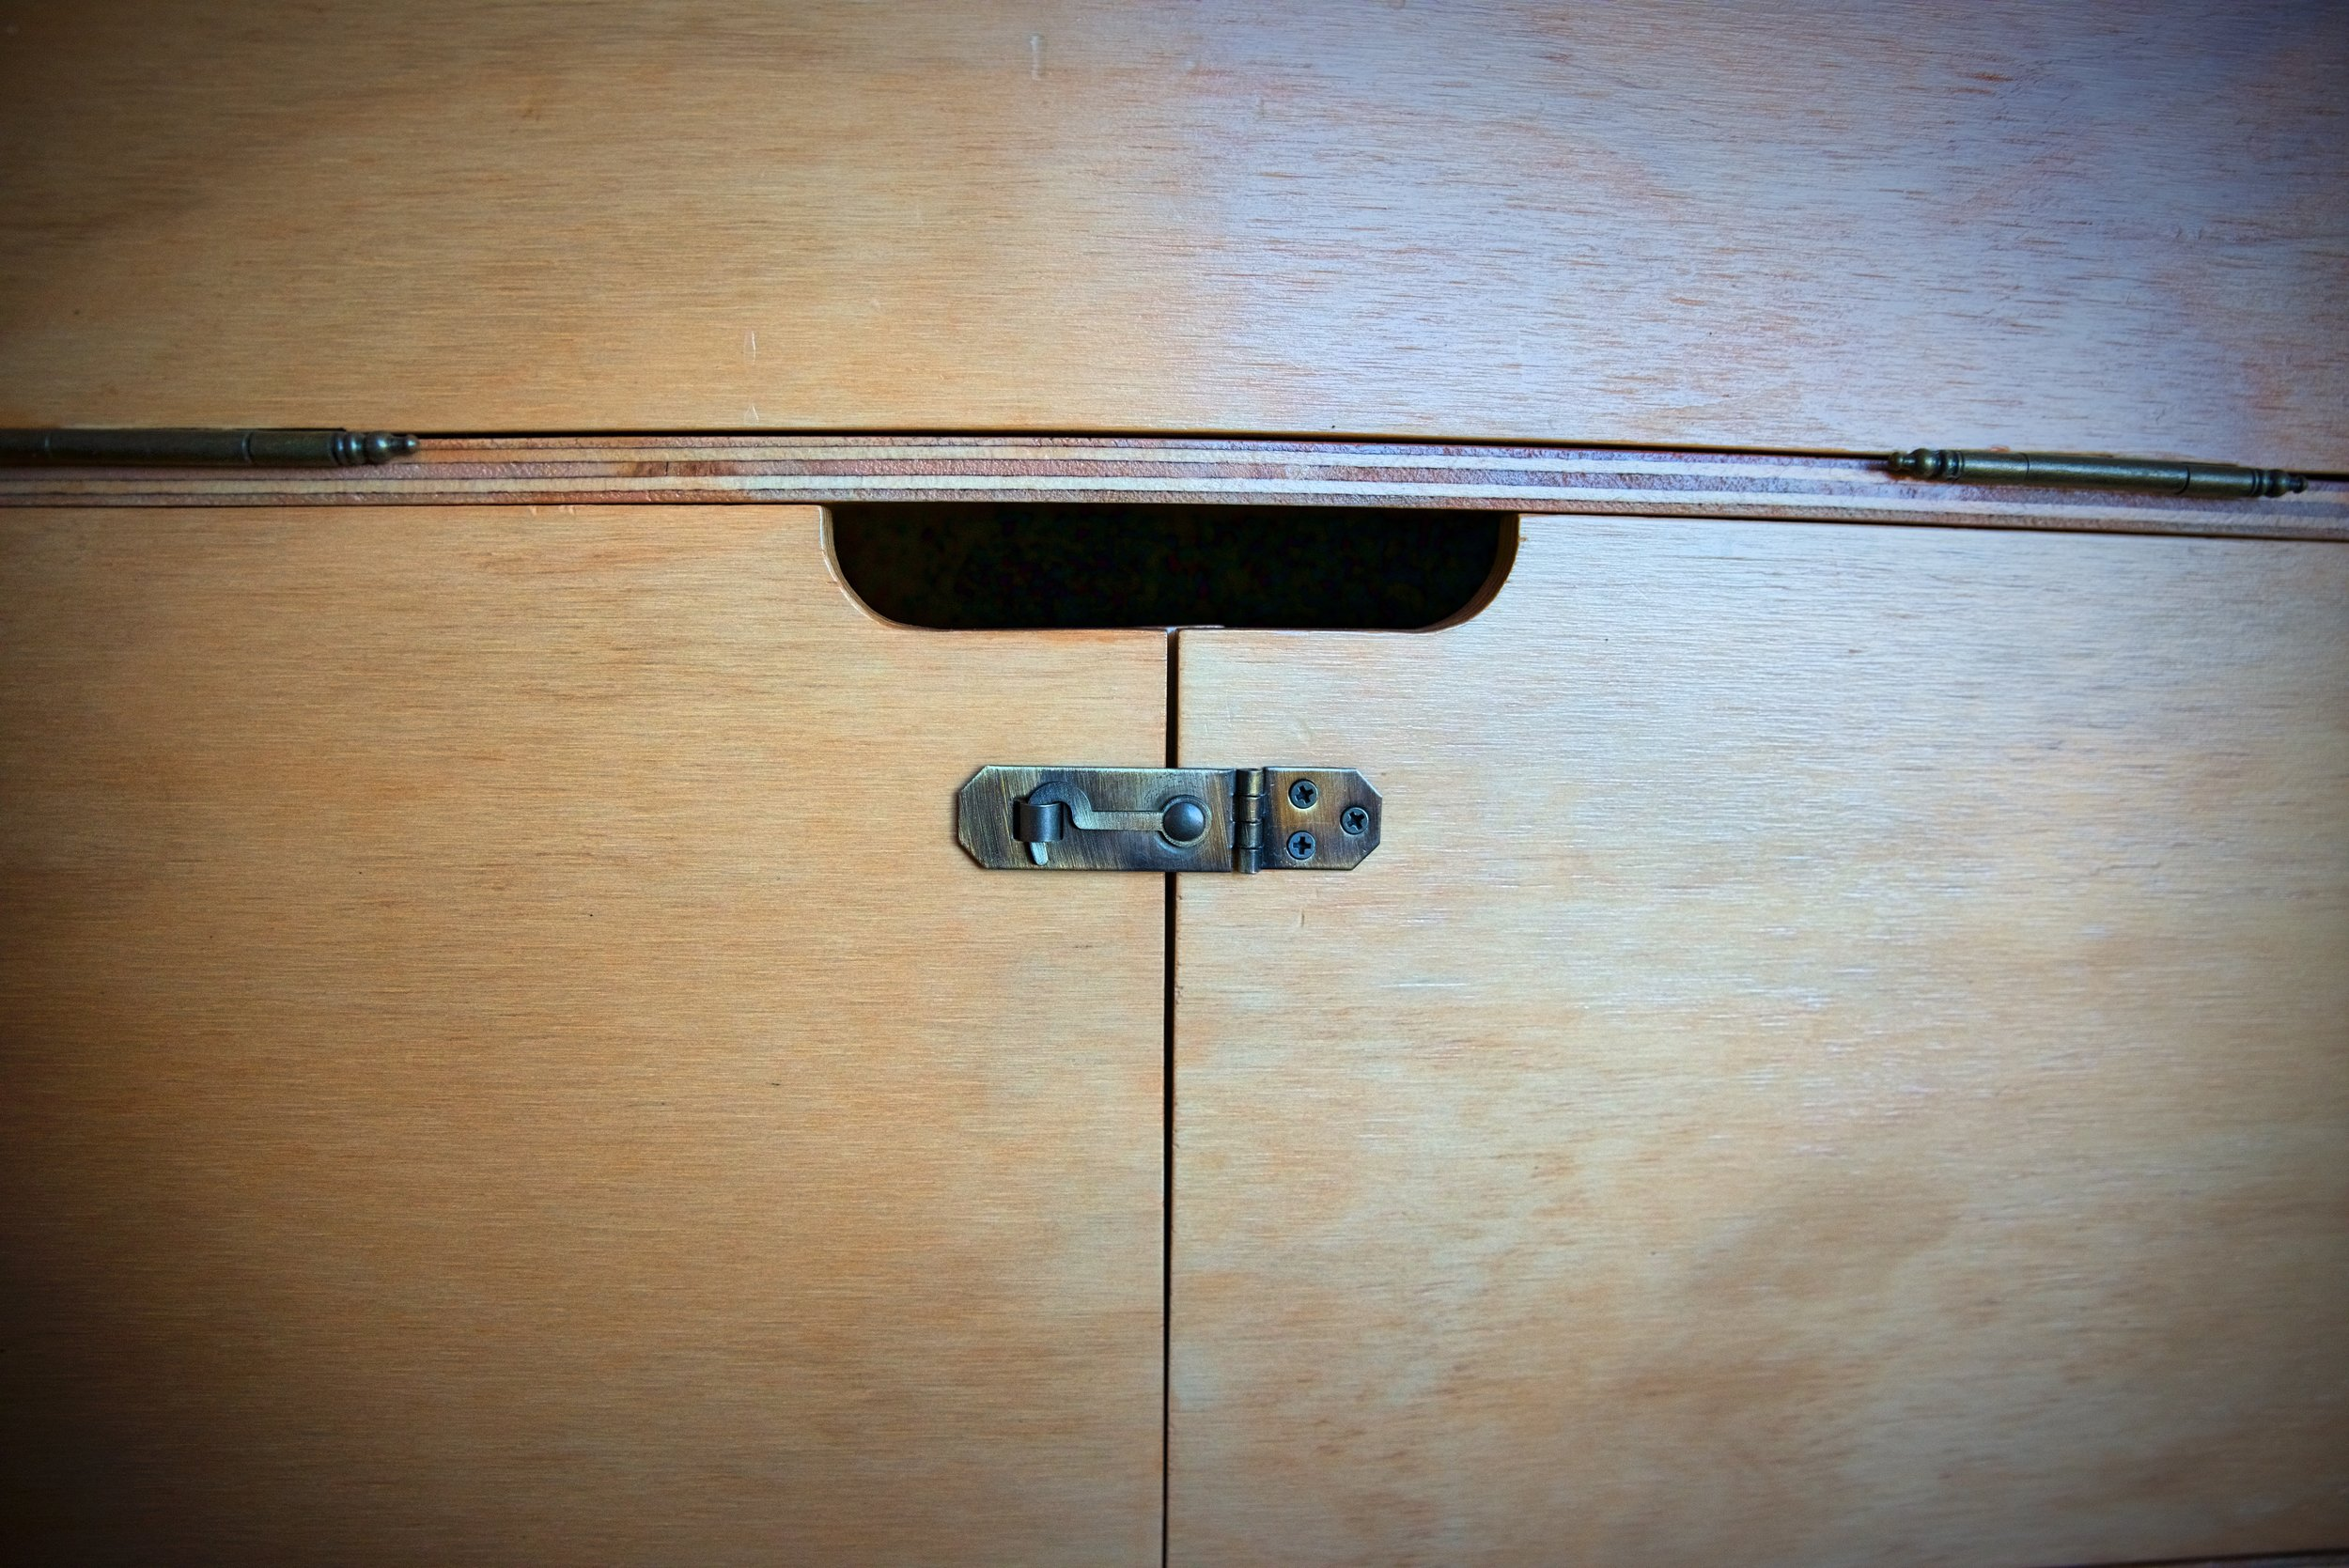 These latches keep the doors closed from the outside so that if the heavy pot slides into it, they won't open.